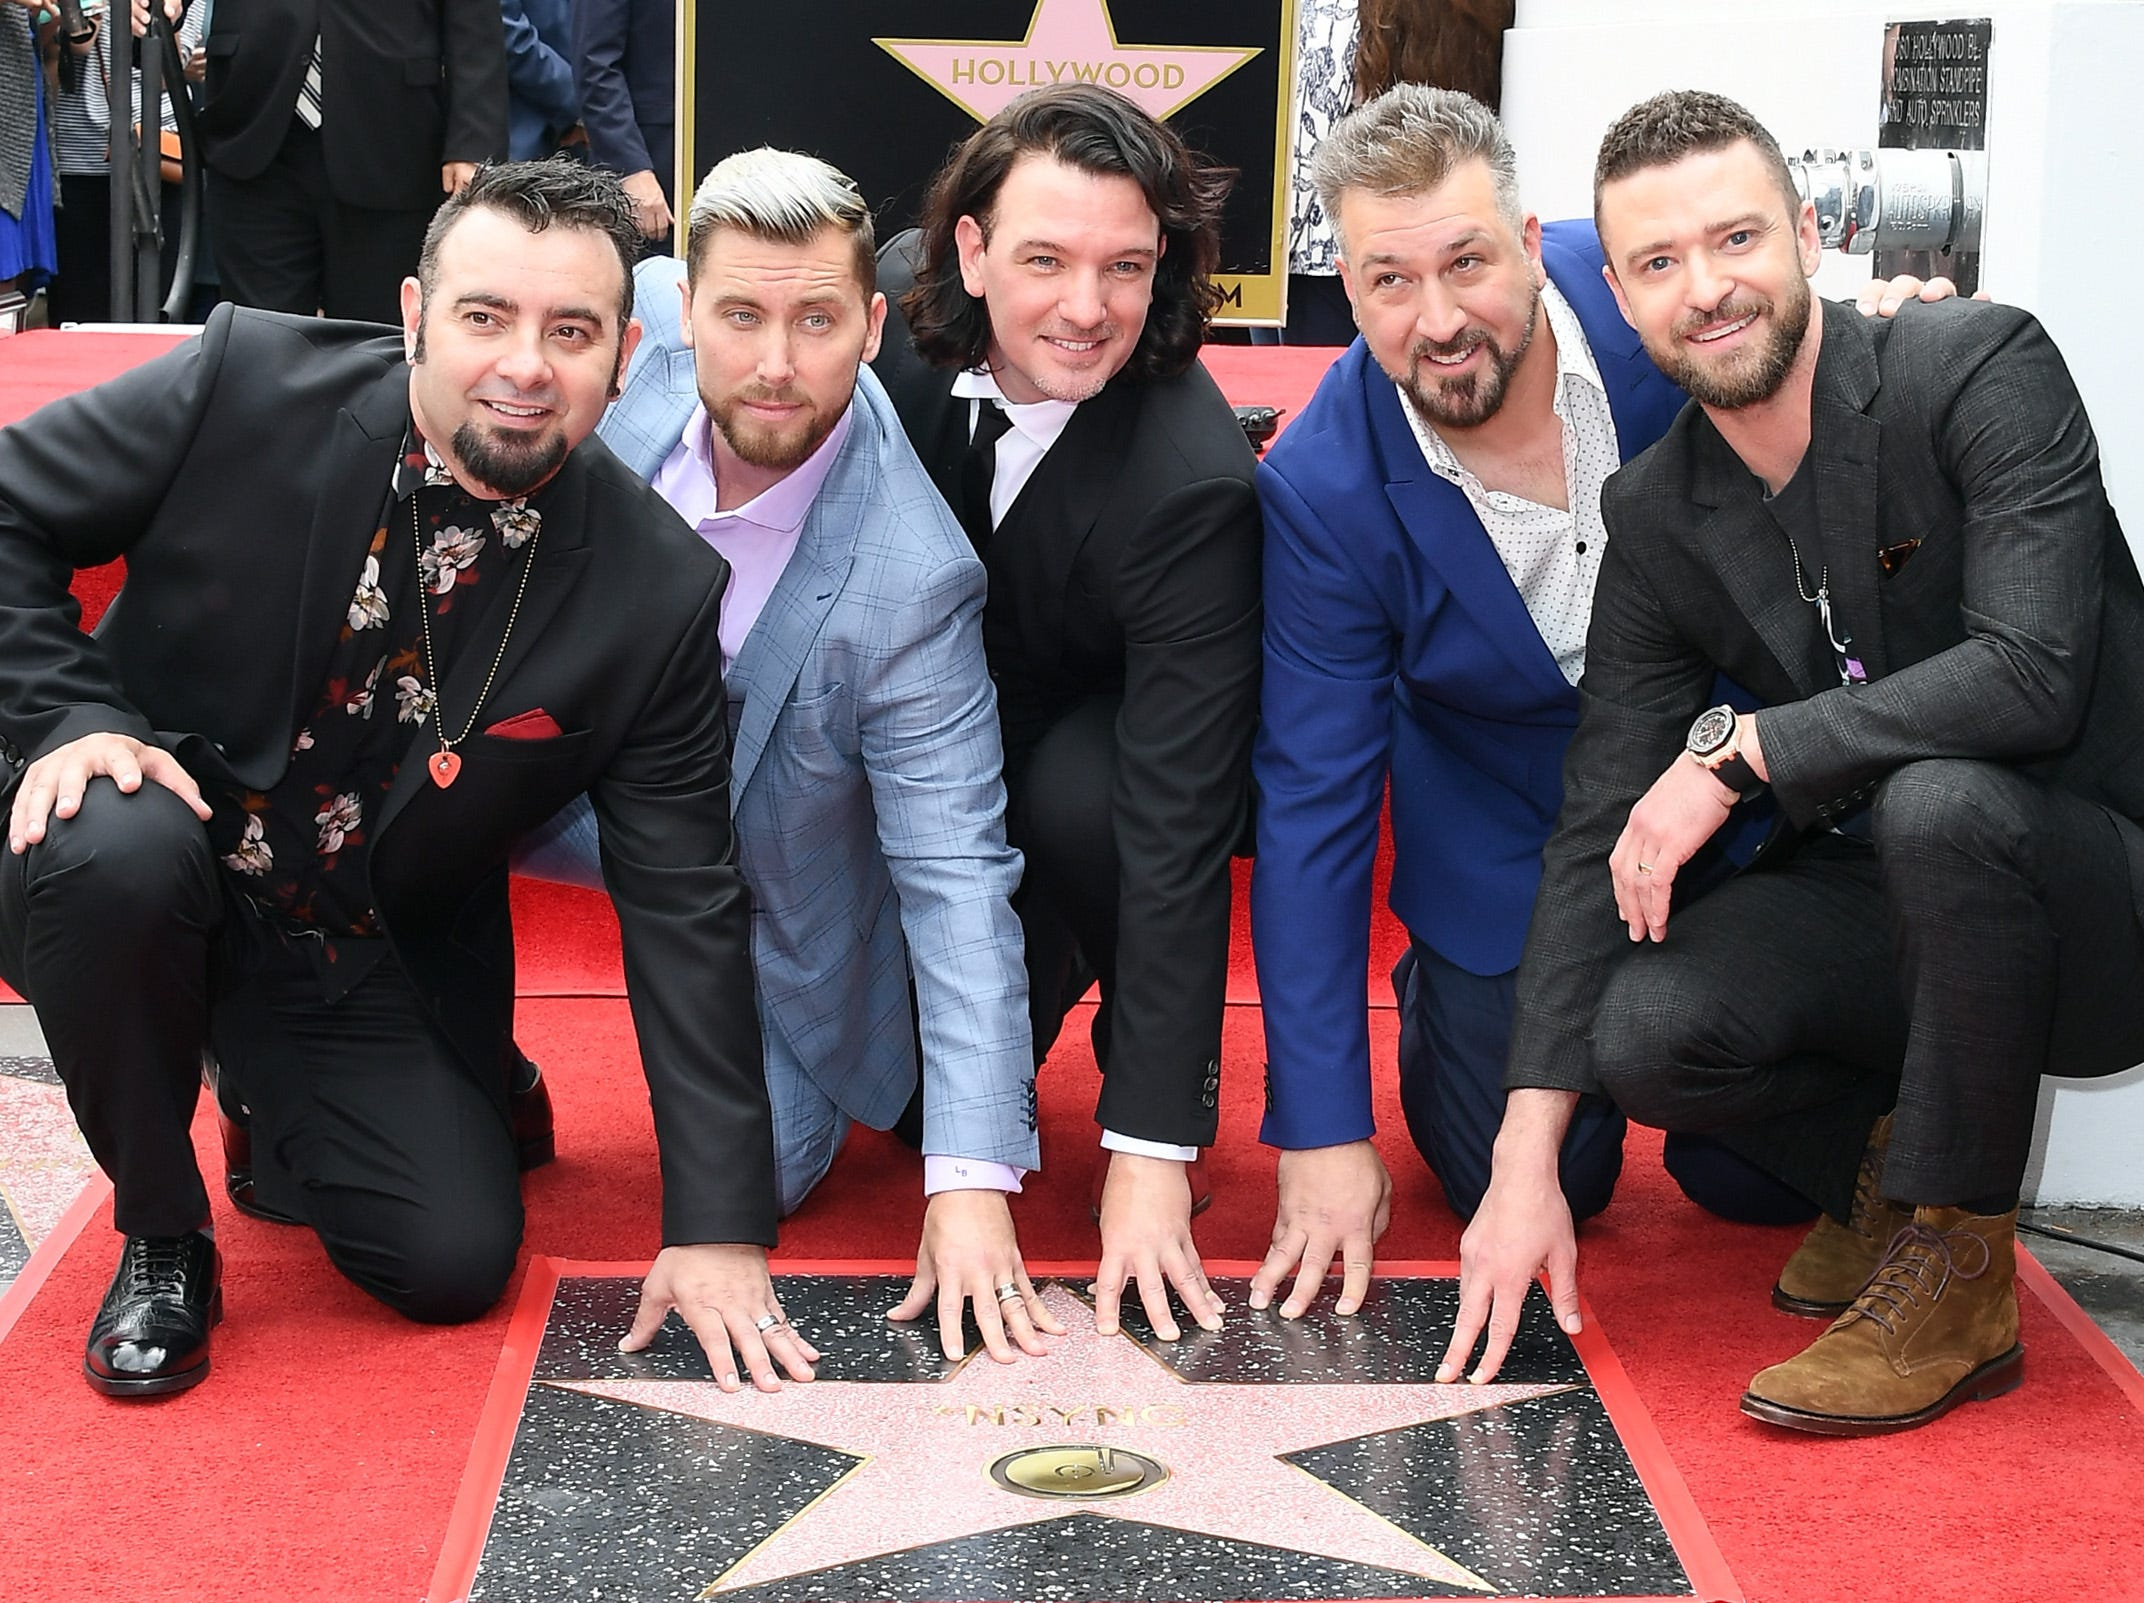 April 30:  NSYNC poses with their new star on the Hollywood Walk of Fame.